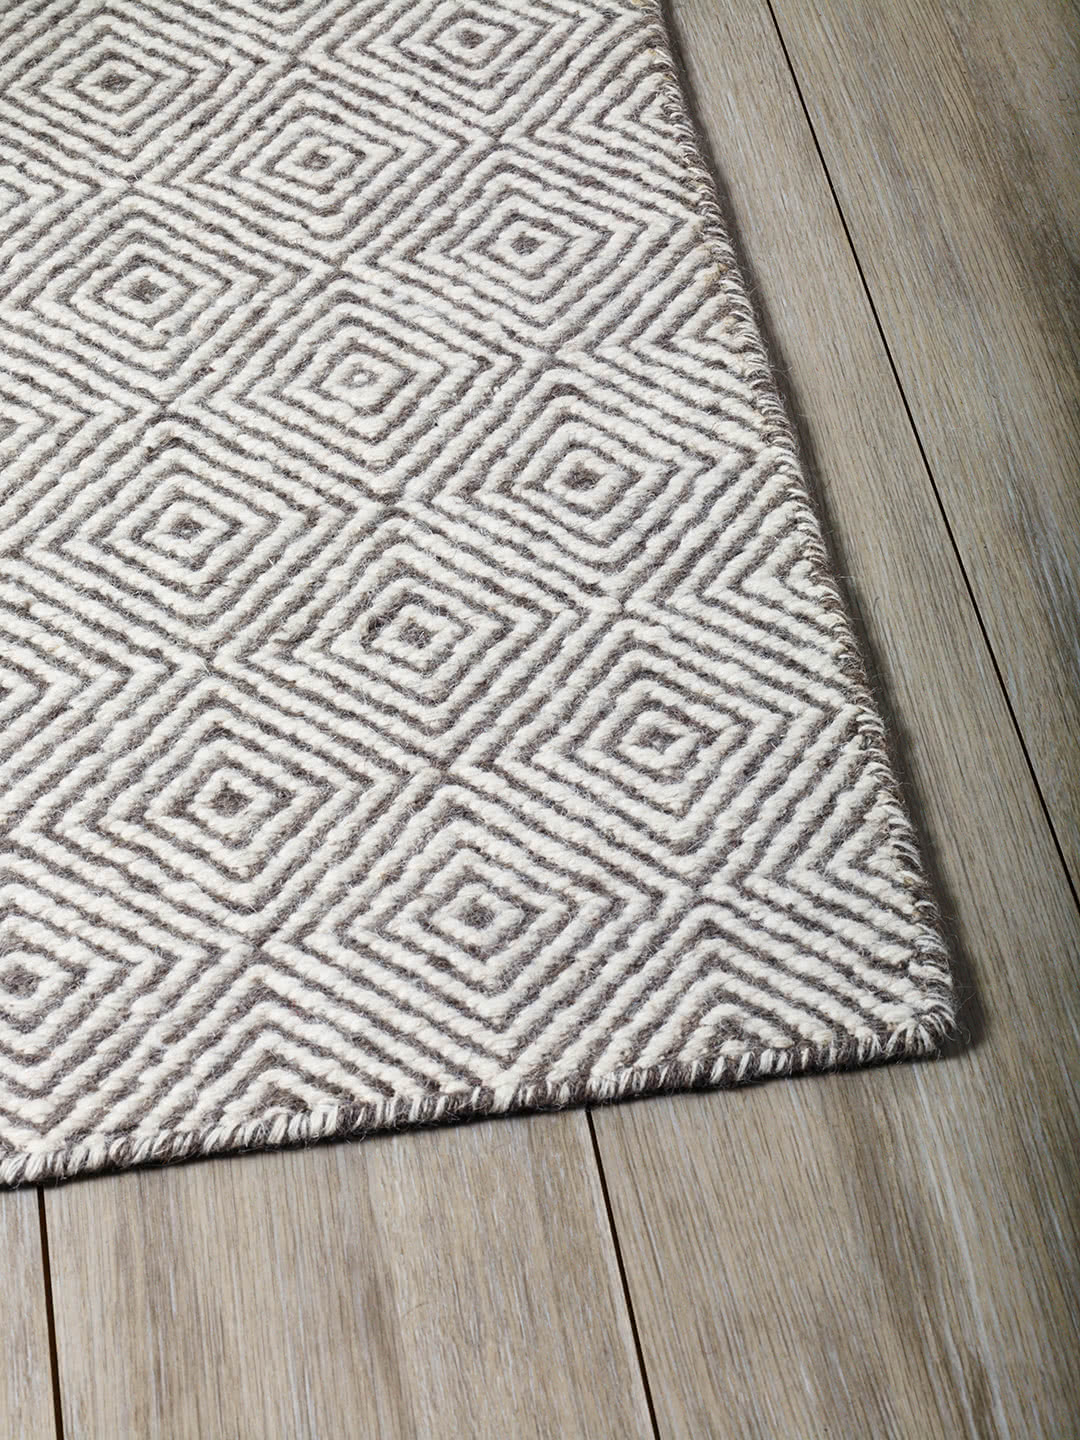 Natural Grey pure wool rugs Perth